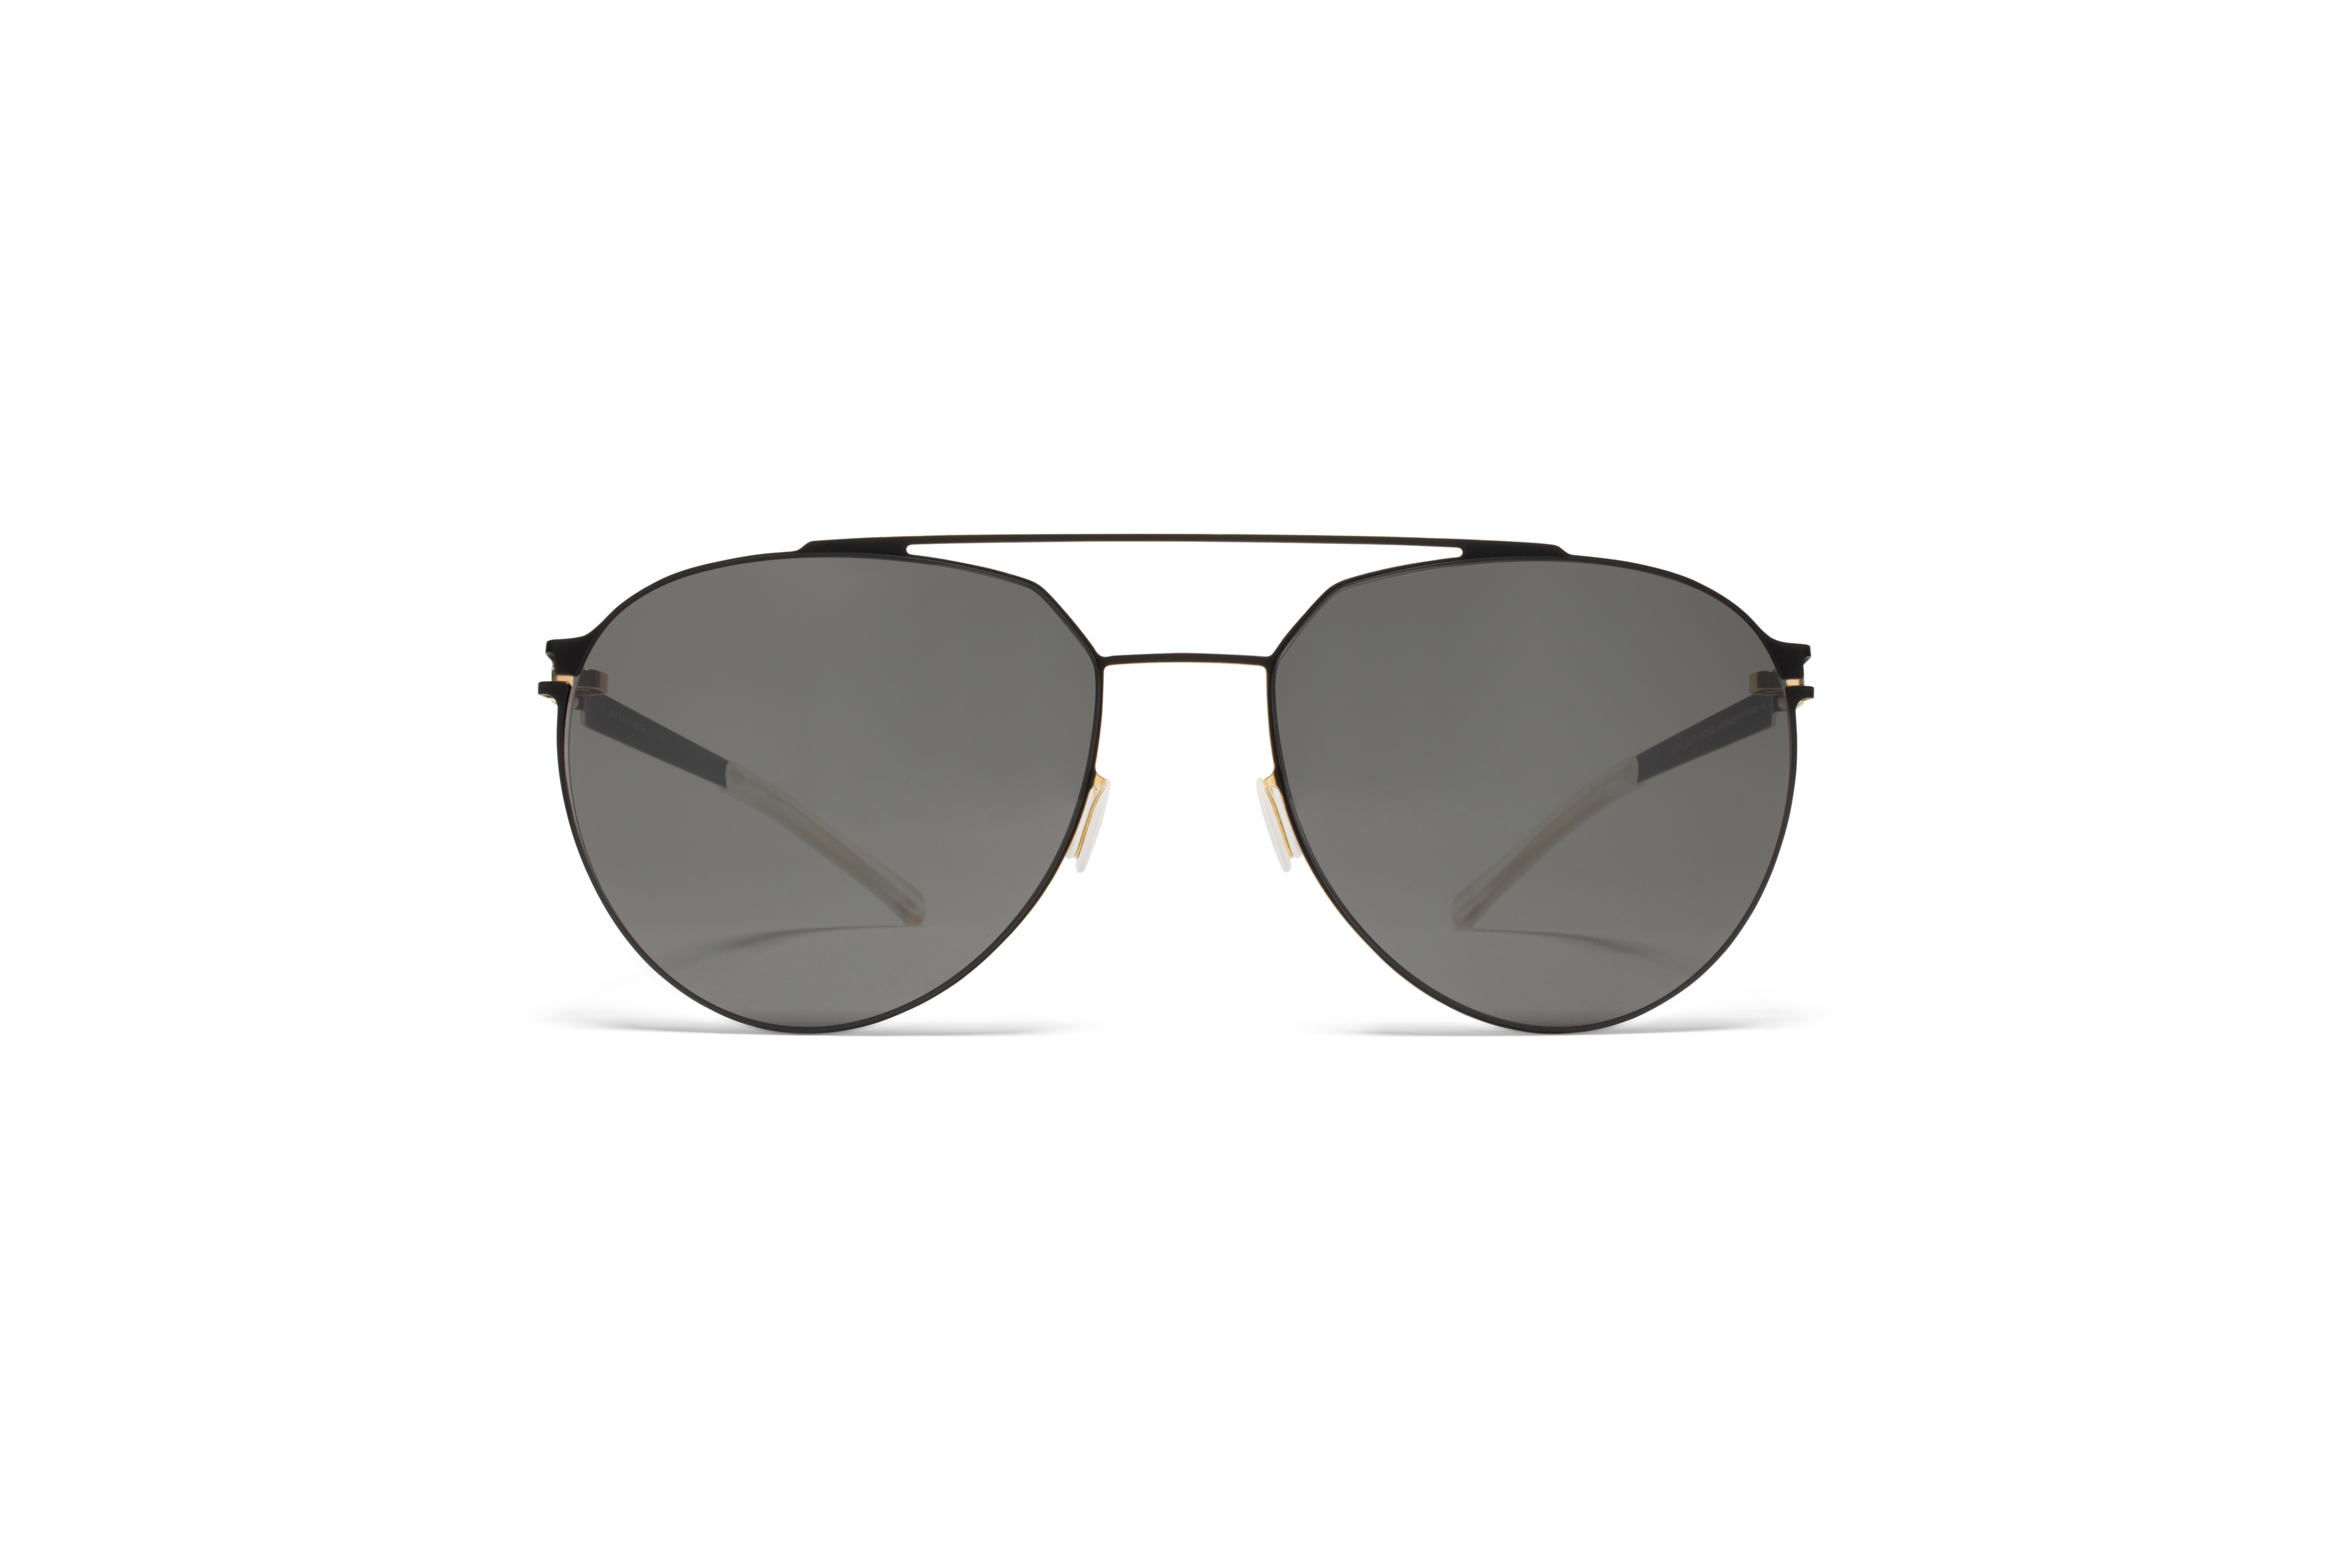 MYKITA No1 Sun Sylvester Black Gold Edges Darkgrey590afb57799c8